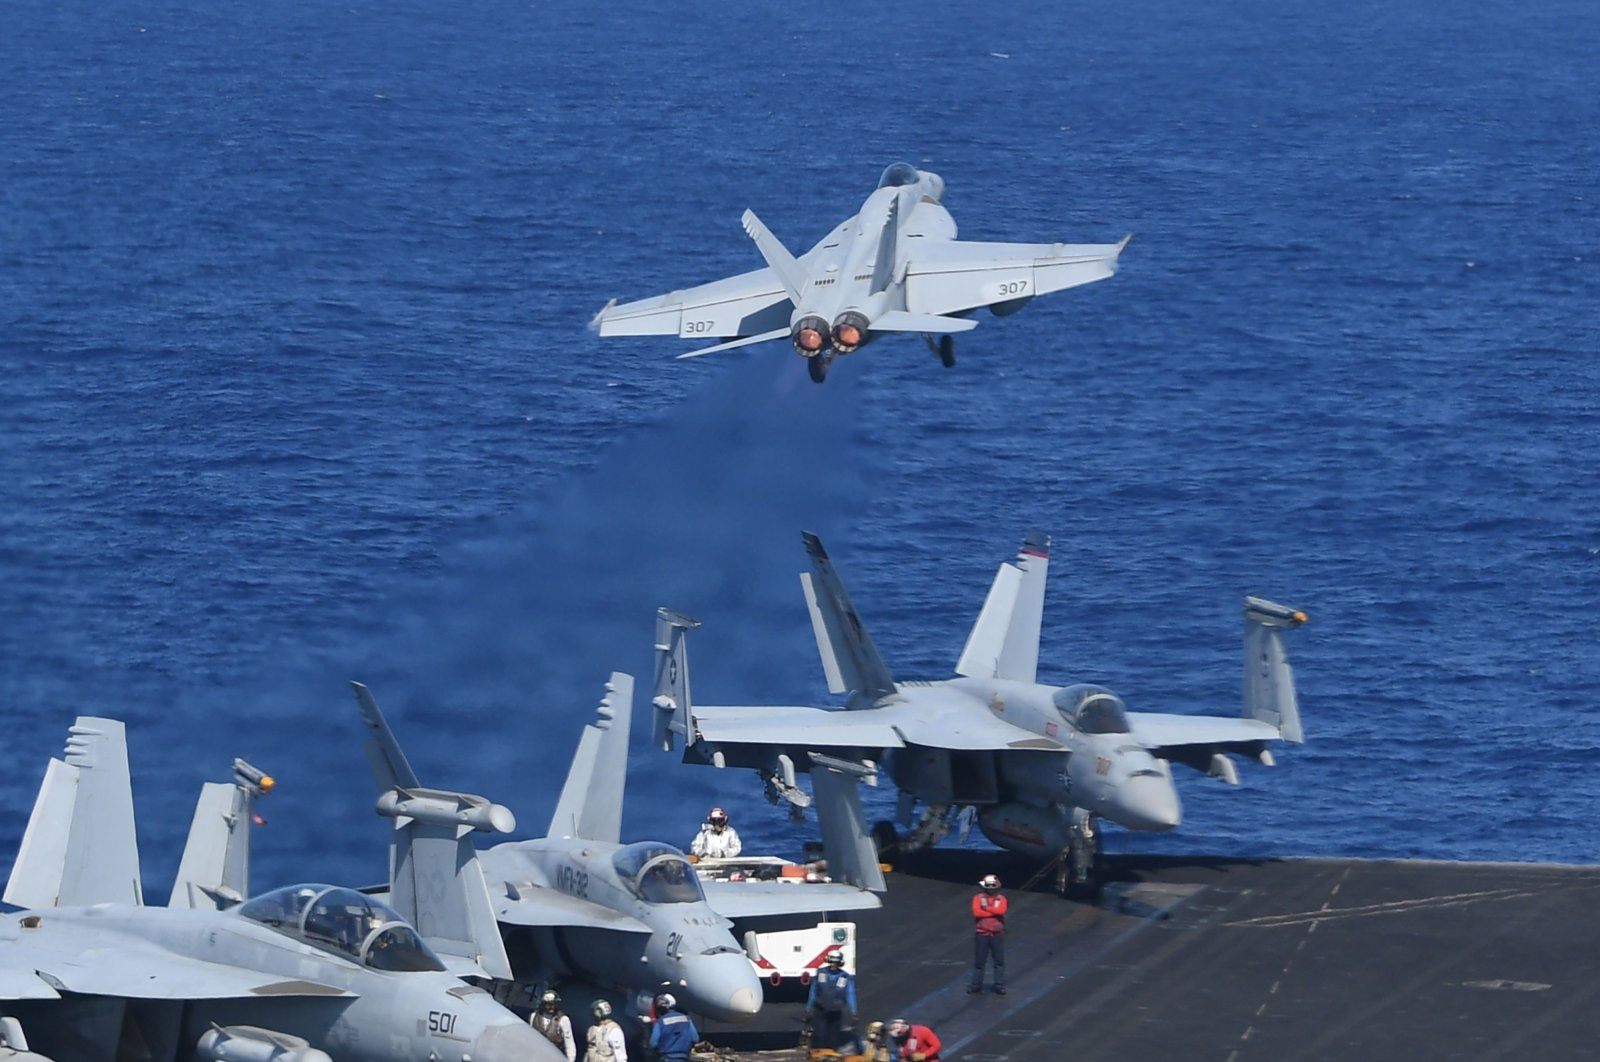 A US FA-18 hornet fighter jet flies past fighter jets and an E-2C Hawkeyes during a routine training exercise aboard U.S. aircraft carrier Theodore Roosevelt in the South China Sea on April 10, 2018. (AFP Photo)